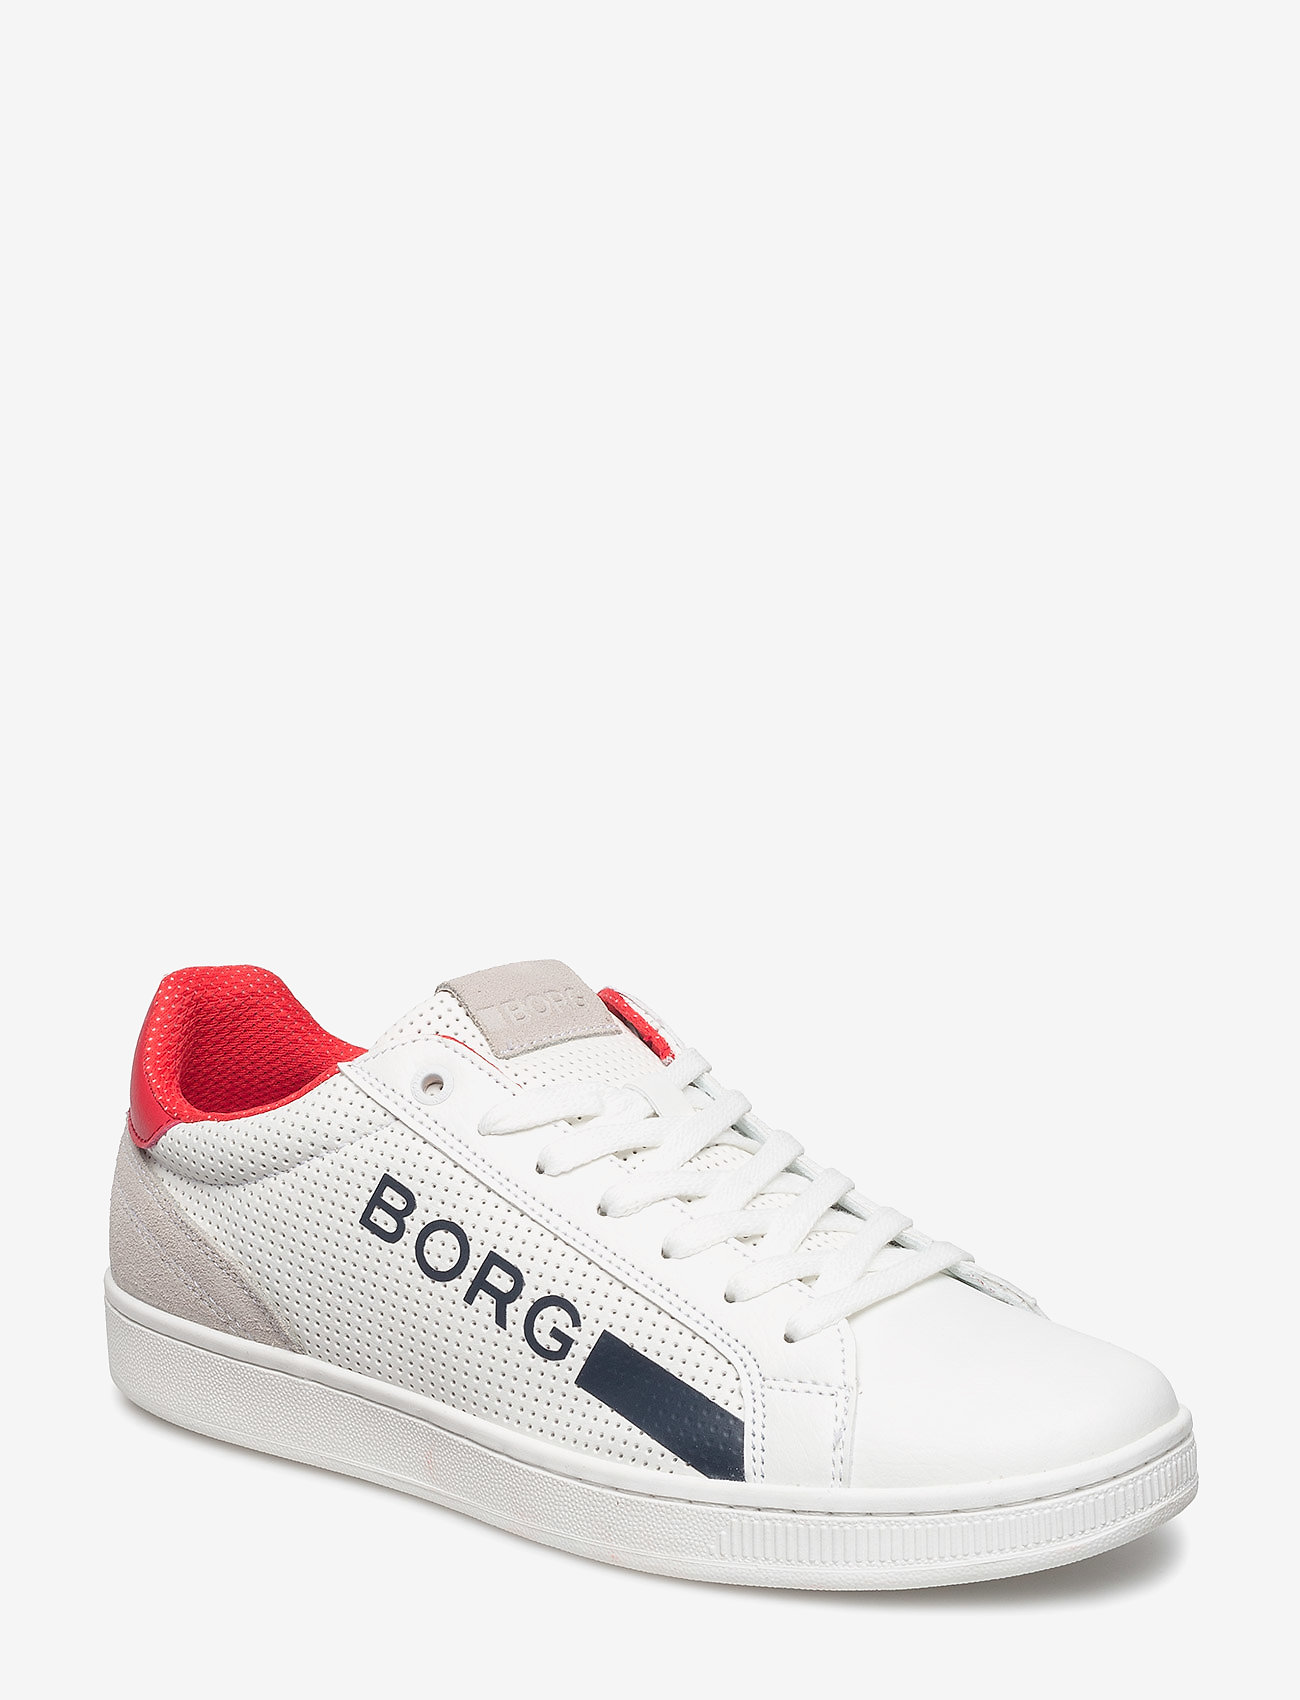 Björn Borg - T330 Low Ctr Prf M - laag sneakers - white/red - 0